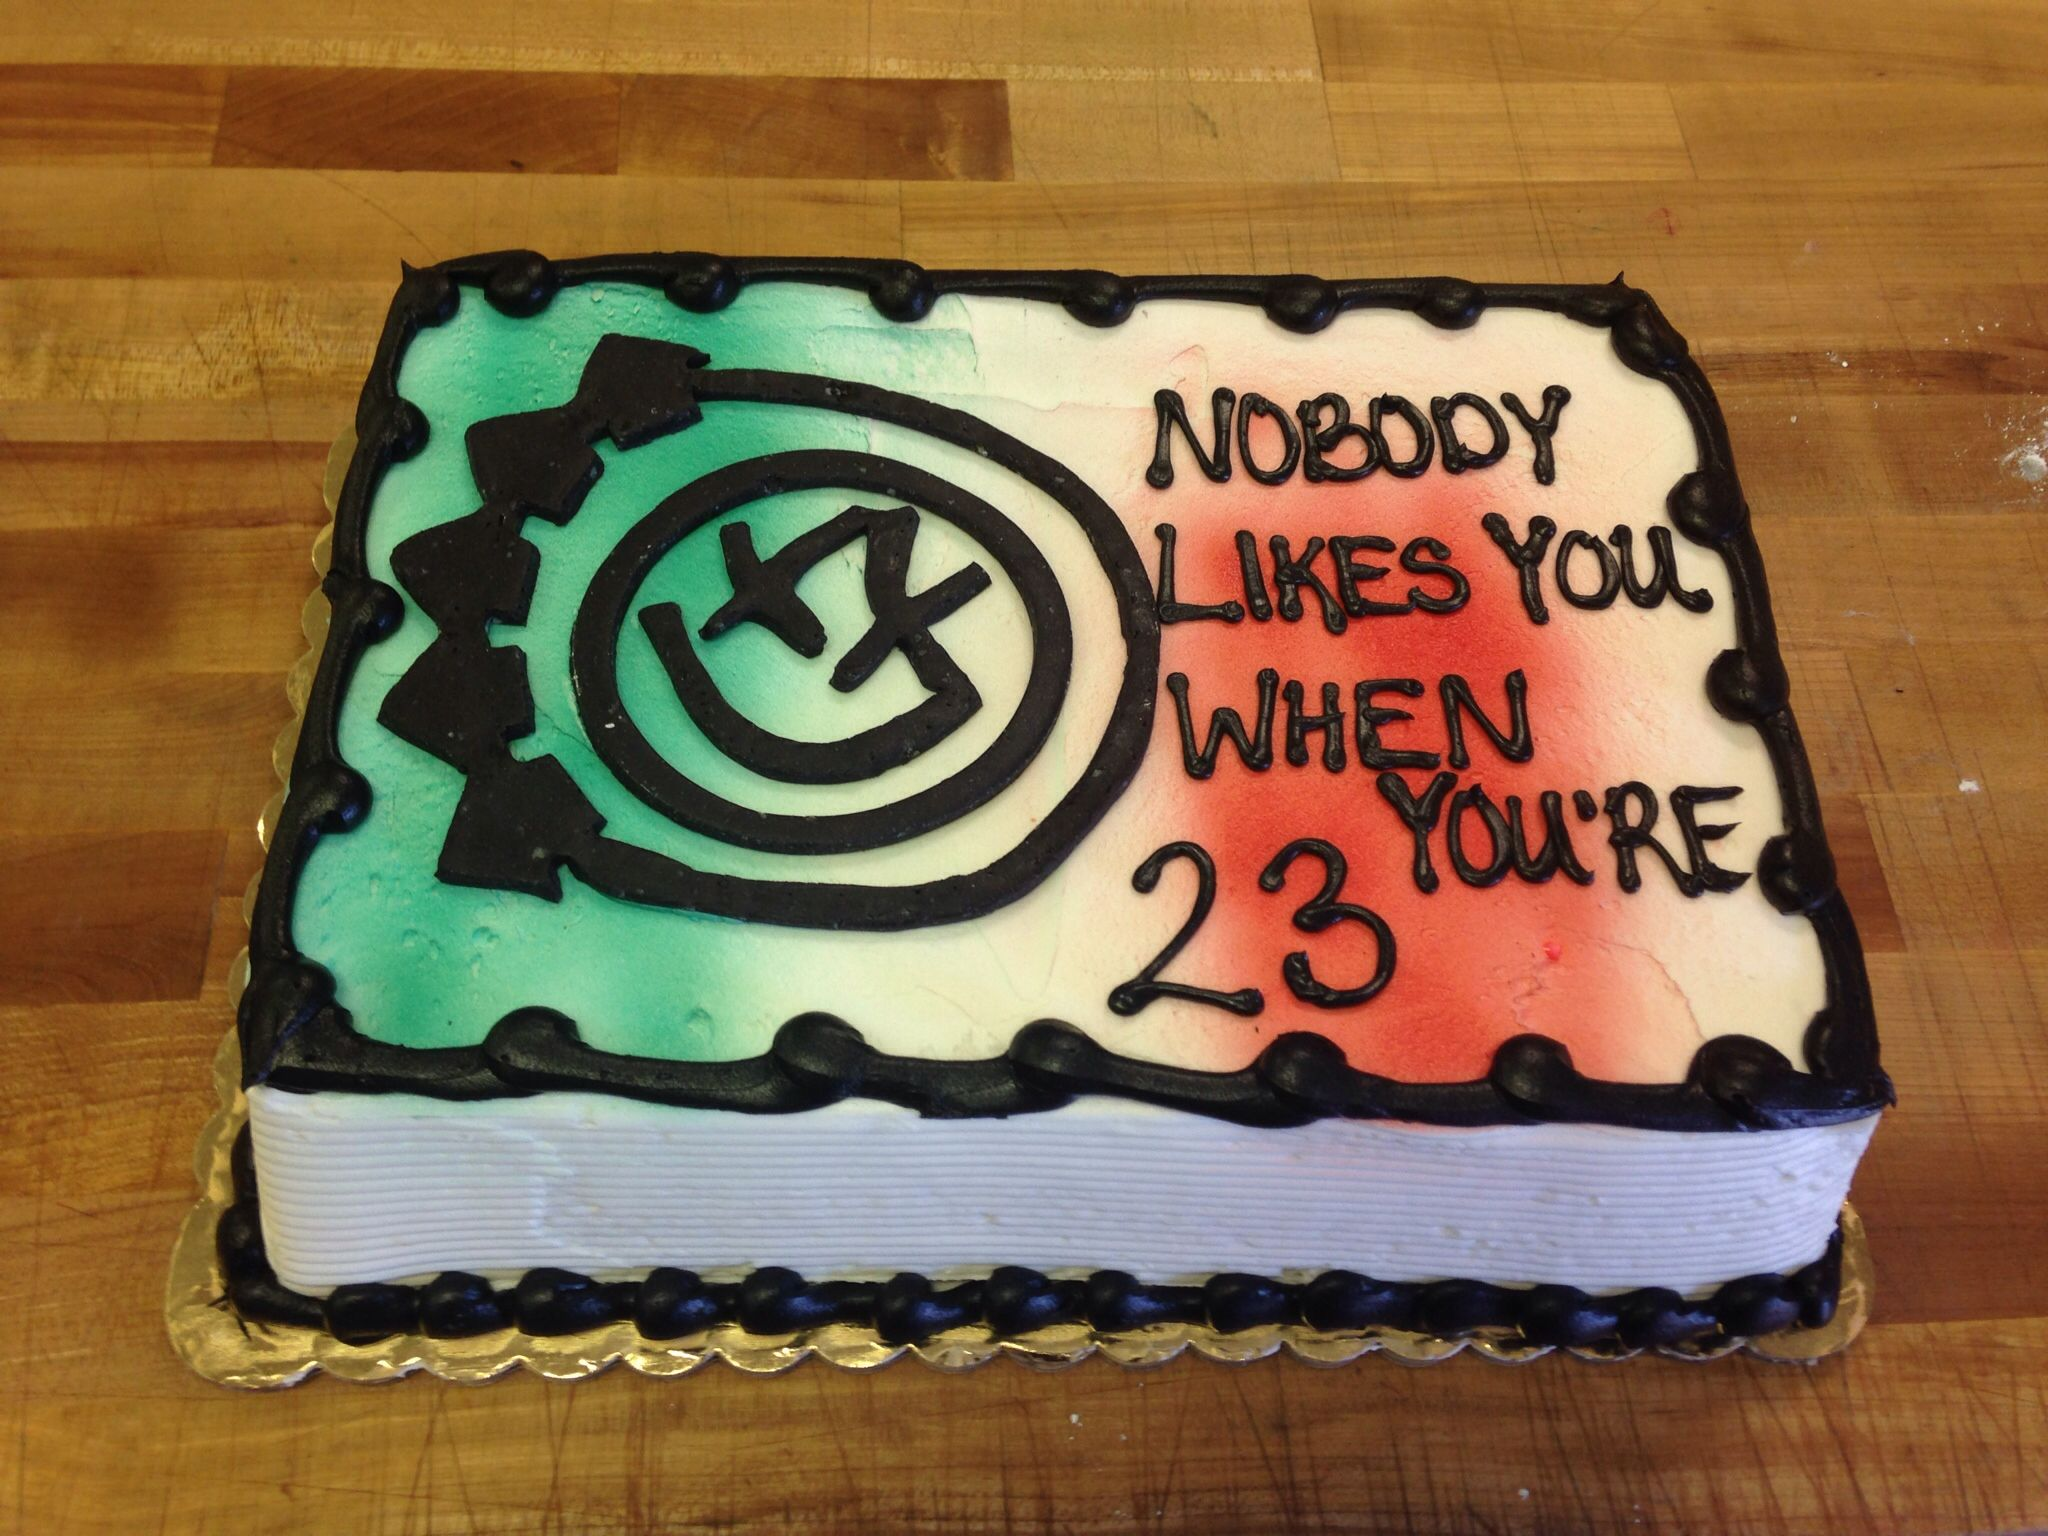 Blink 182 cake for dylans birthday f o o d pinterest blink blink 182 cake for dylans birthday bookmarktalkfo Image collections